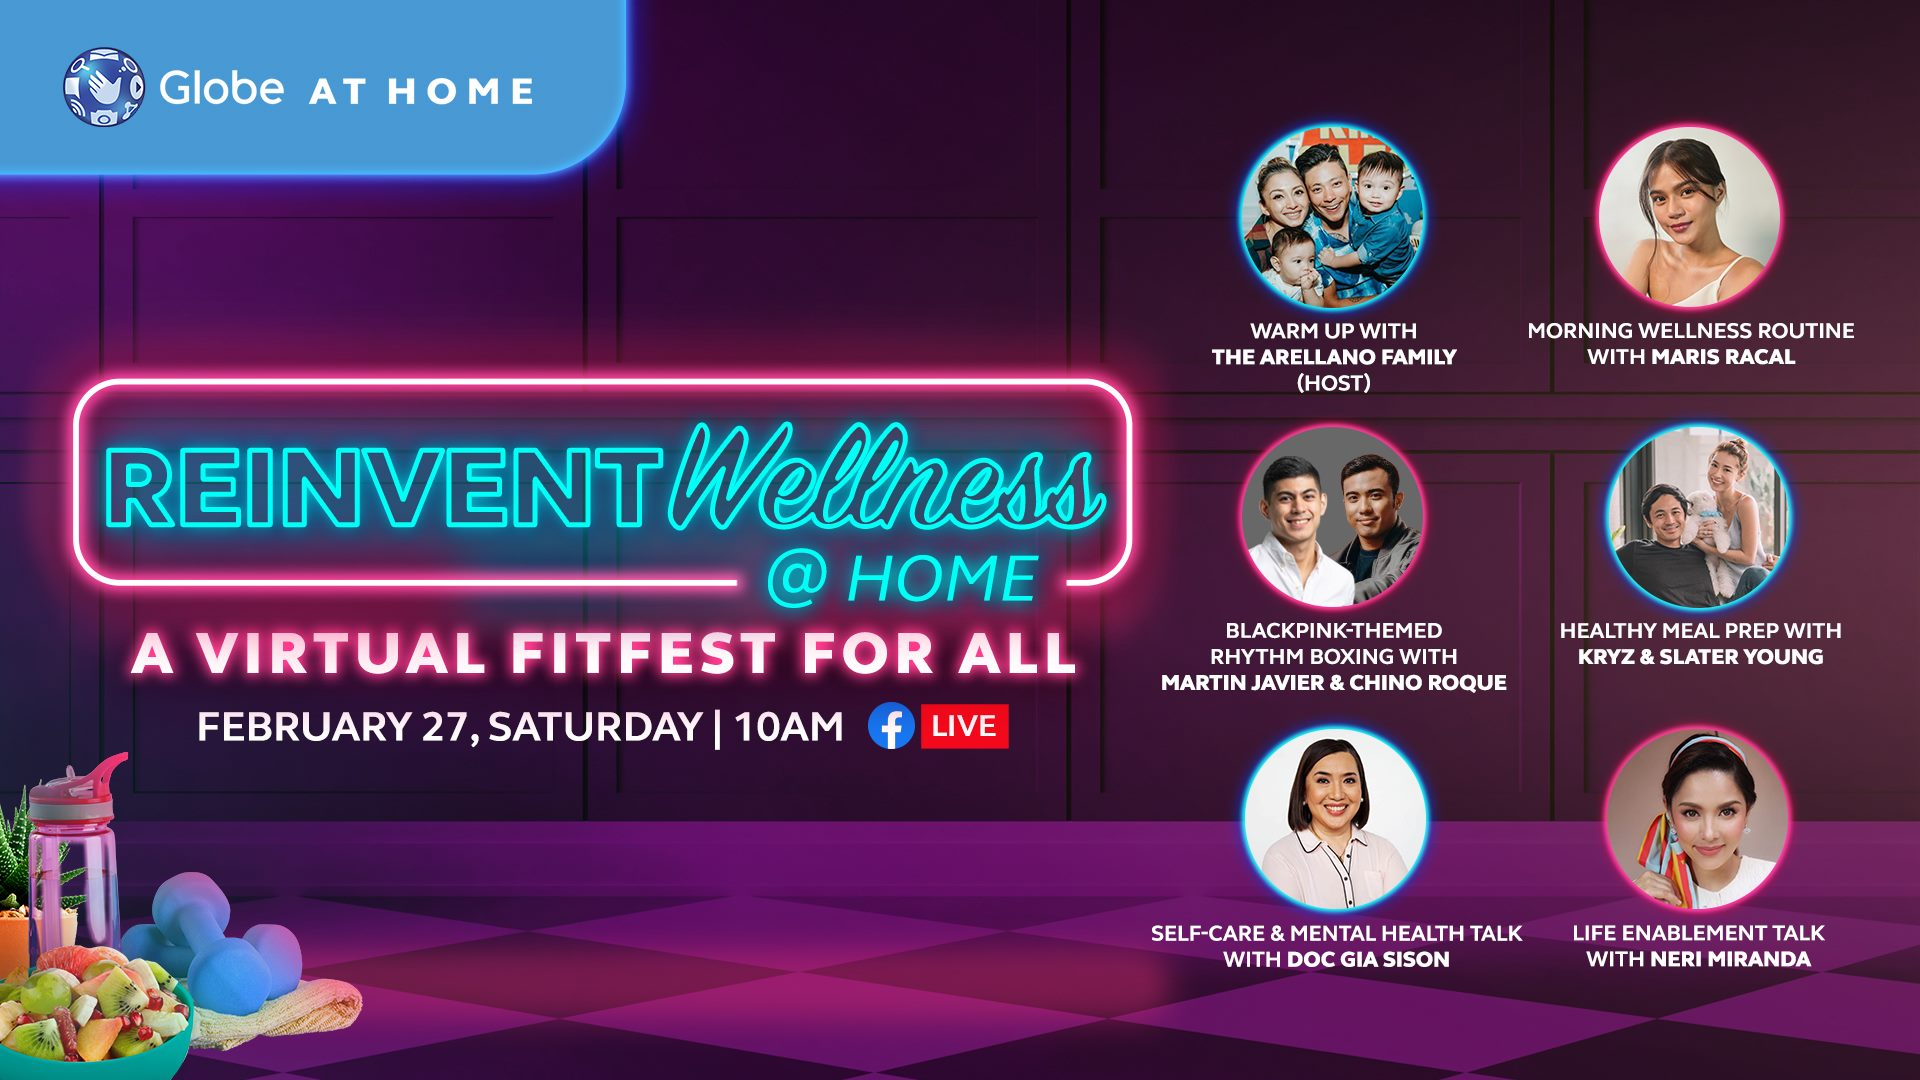 Globe At Home celebrates fitness with #Reinvent Wellness @ Home: A Virtual Fitfest for All activity day